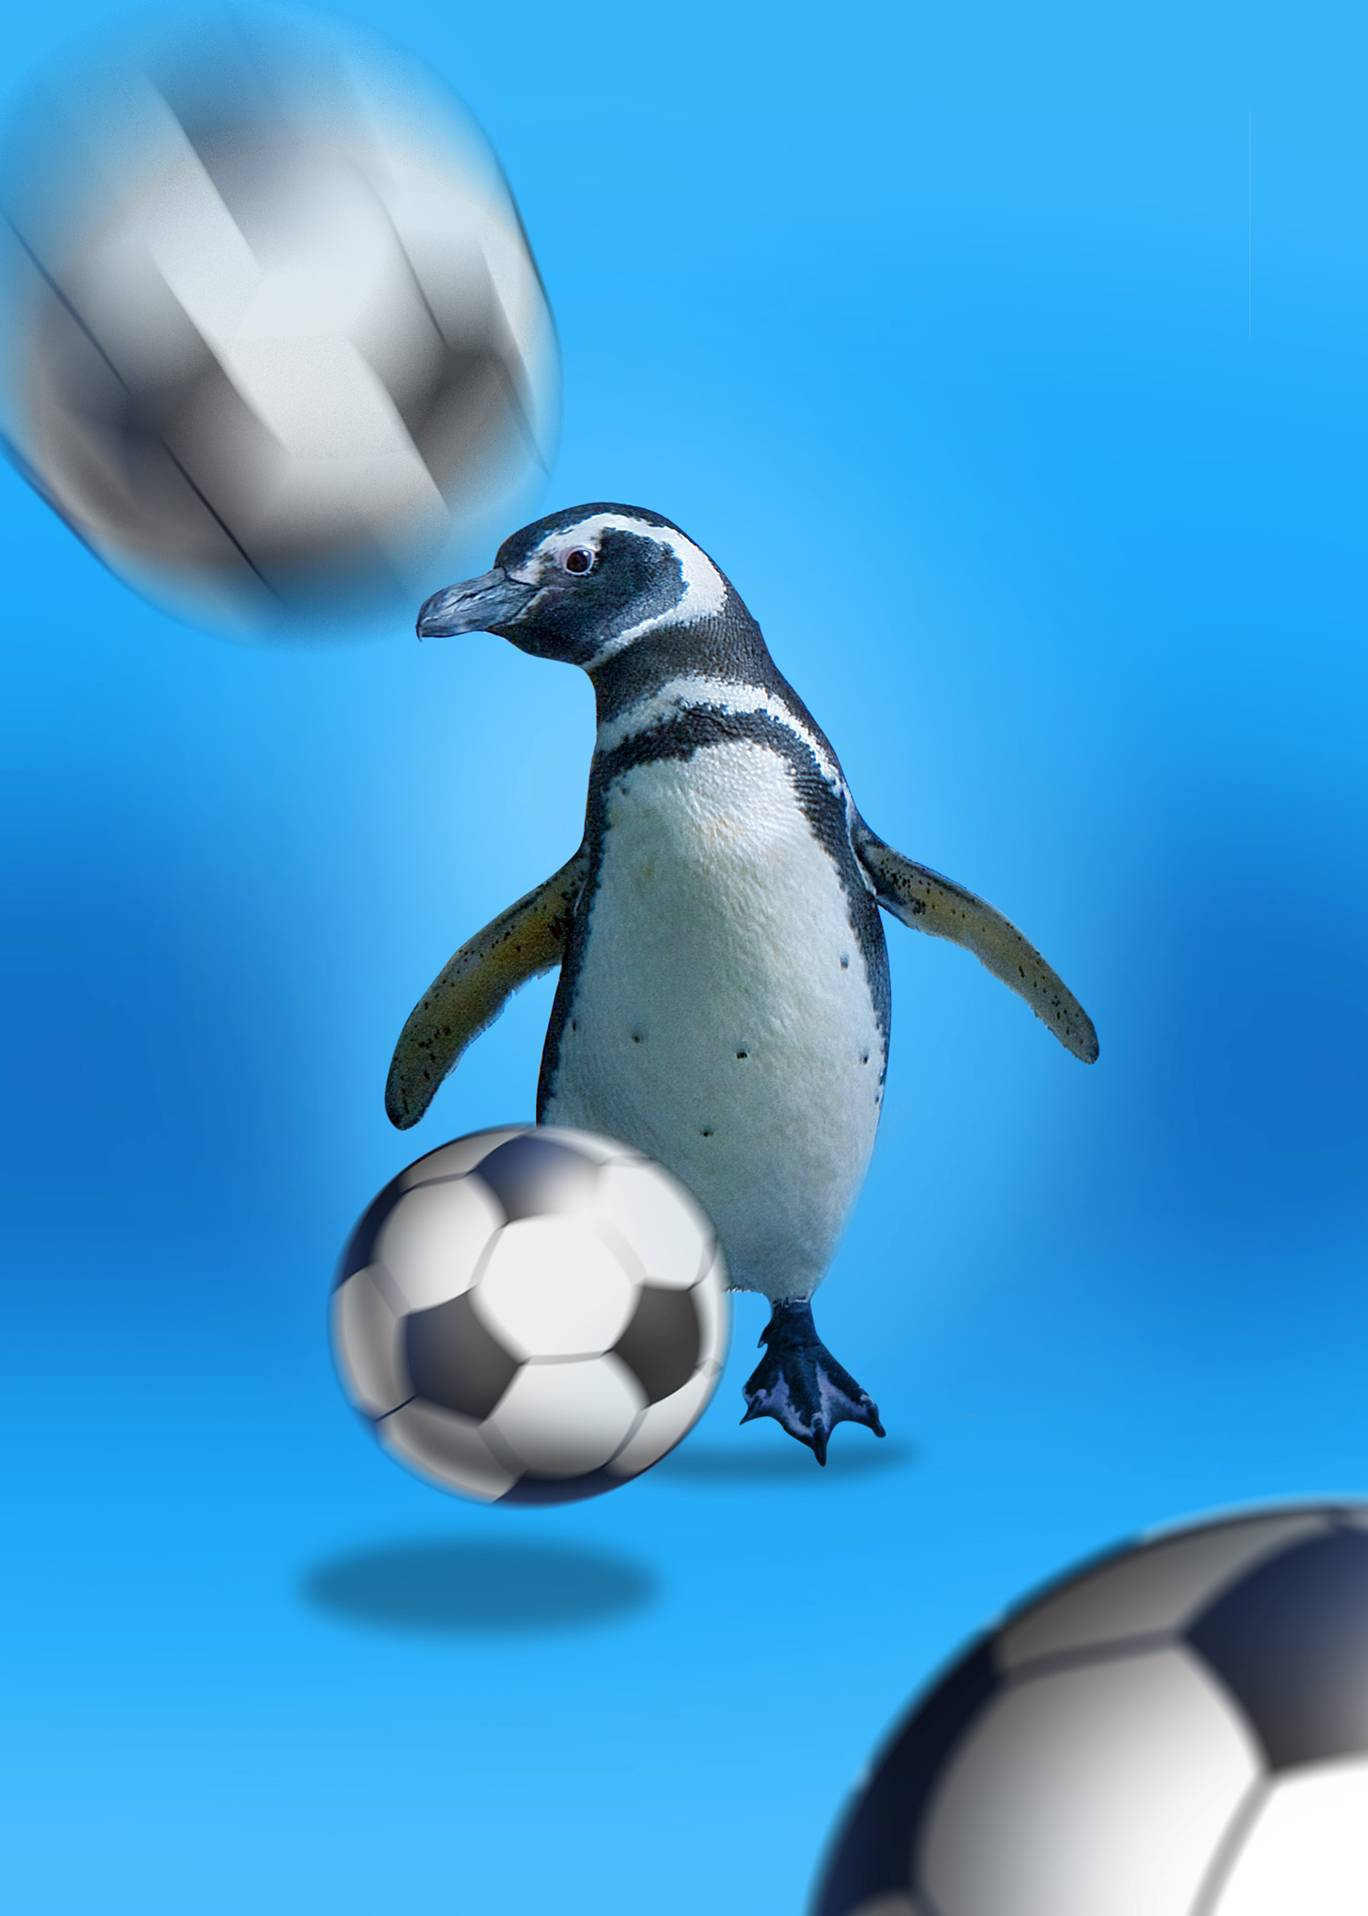 Penguins Playing Soccer | Aquarium of the Pacific